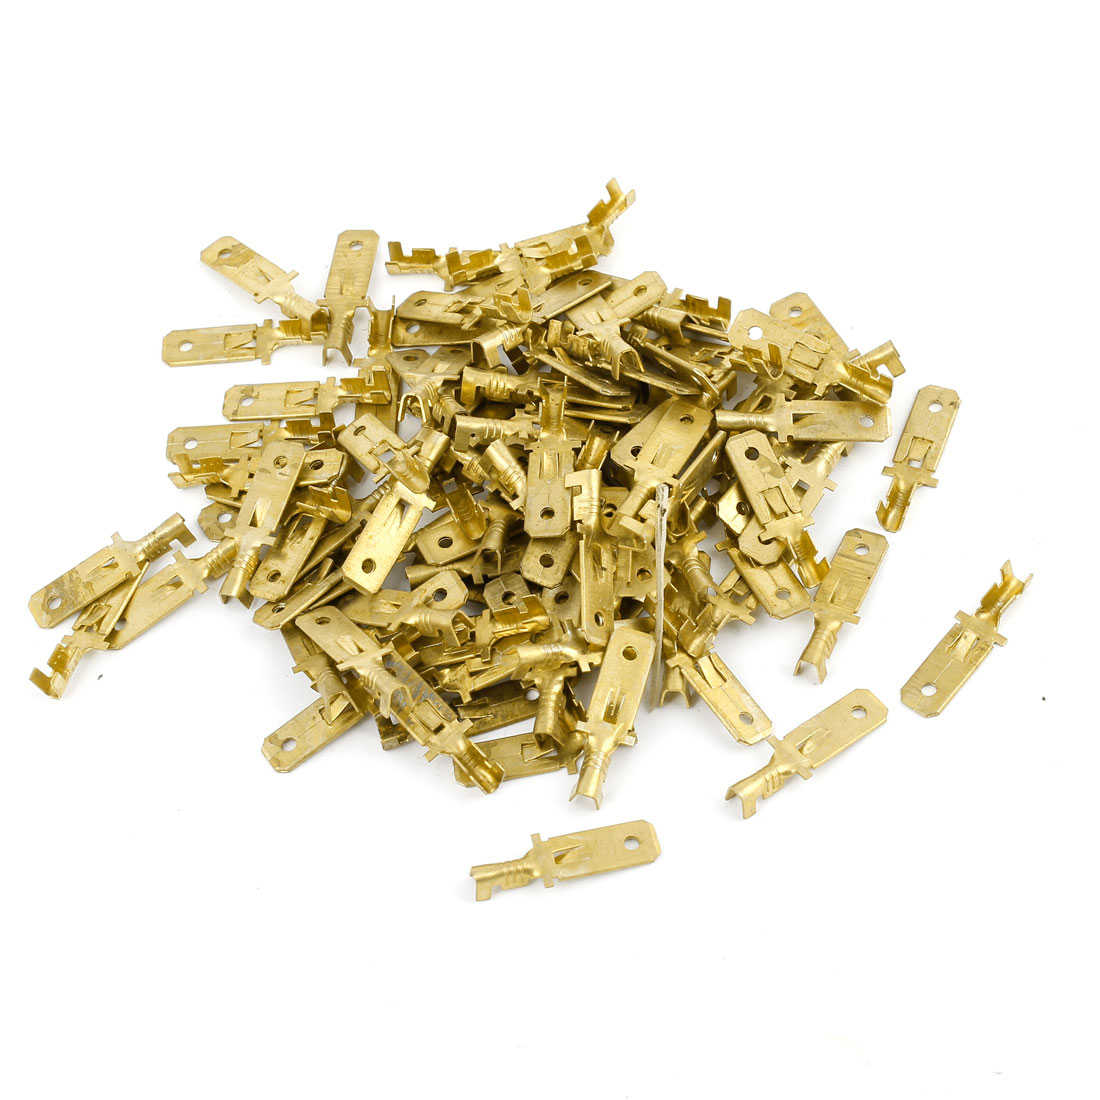 100 Pcs Car 6mm Speaker Spade Male Terminal Cable Connector Gold Tone